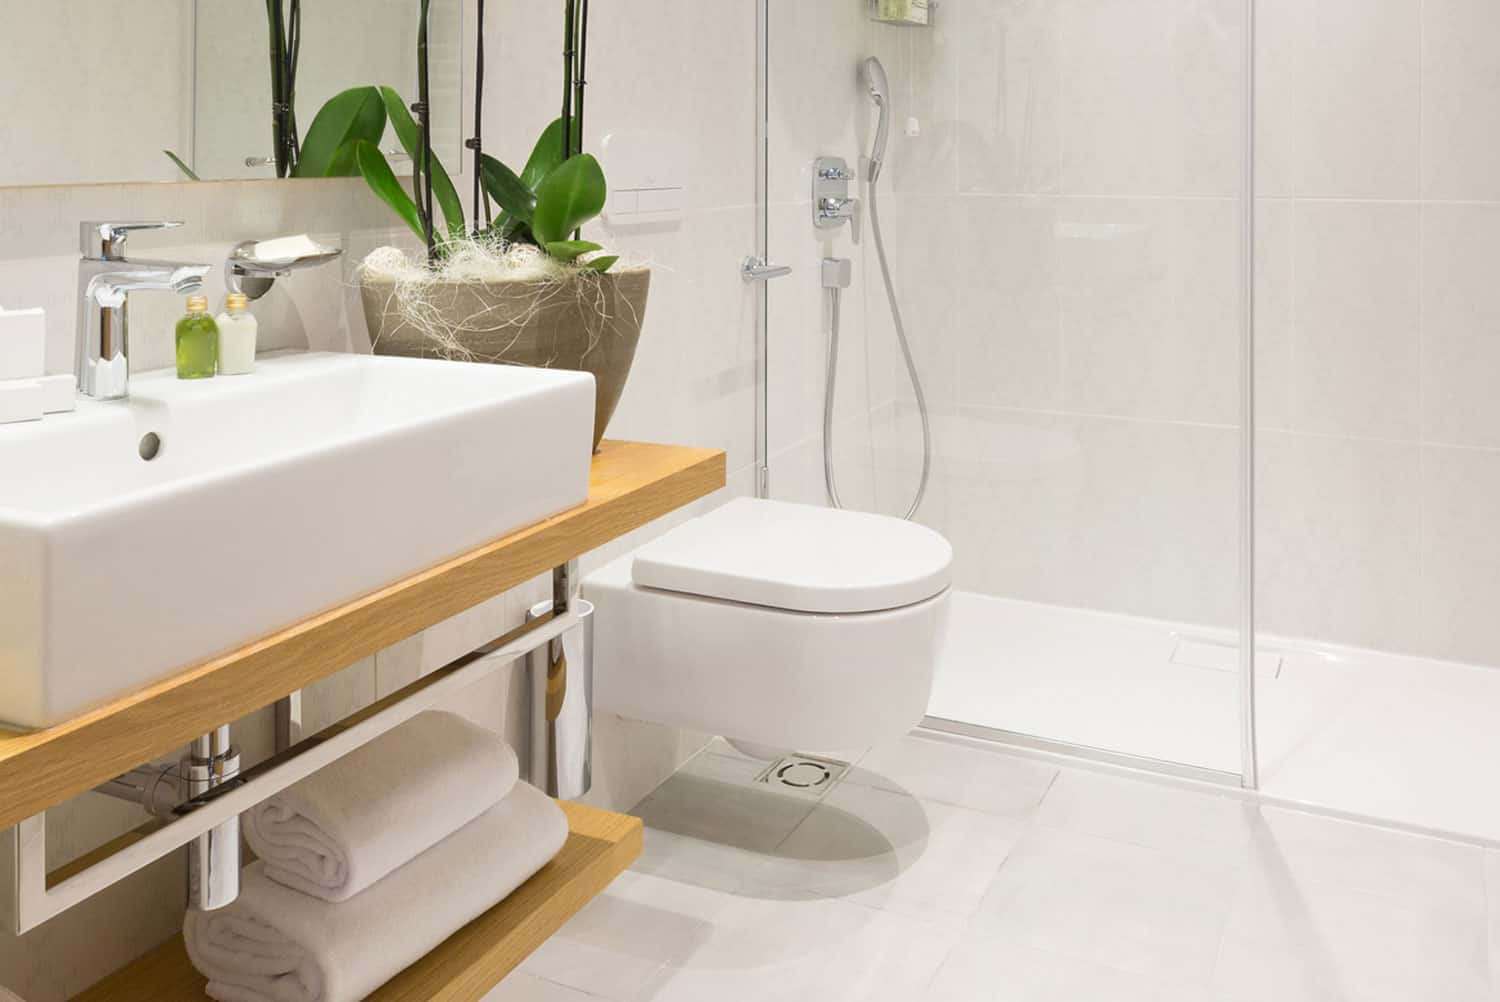 Interior of a modern bathroom with toilet, How To Clean Toilet Siphons